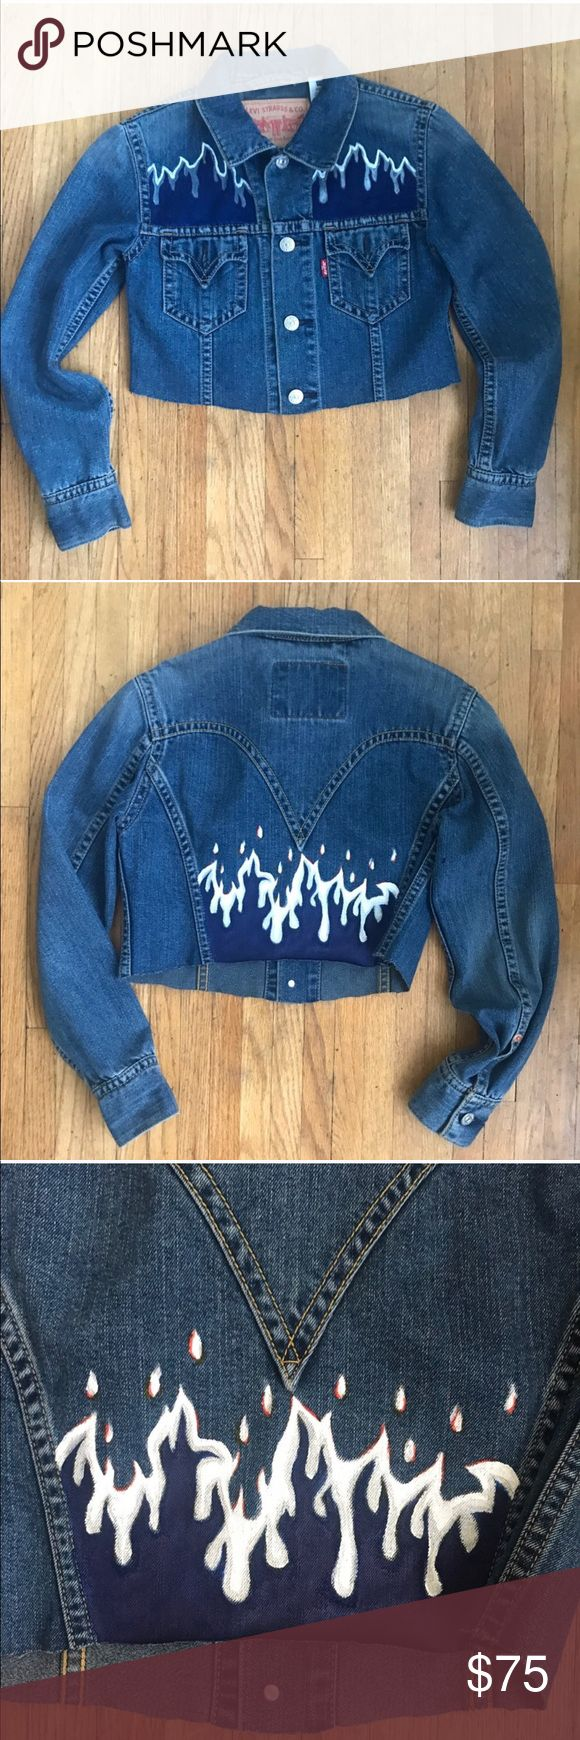 ❣️FLASH SALE Painted Levi's Denim Cropped Jacket Radddddd hand painted Levi's Denim jacket. ⭐️TAGS: urban outfitters zara free people topshop Anthropologie Madewell j.crew dolls kill nasty gal Isabel Marant wrangler lee Levi's Jackets & Coats